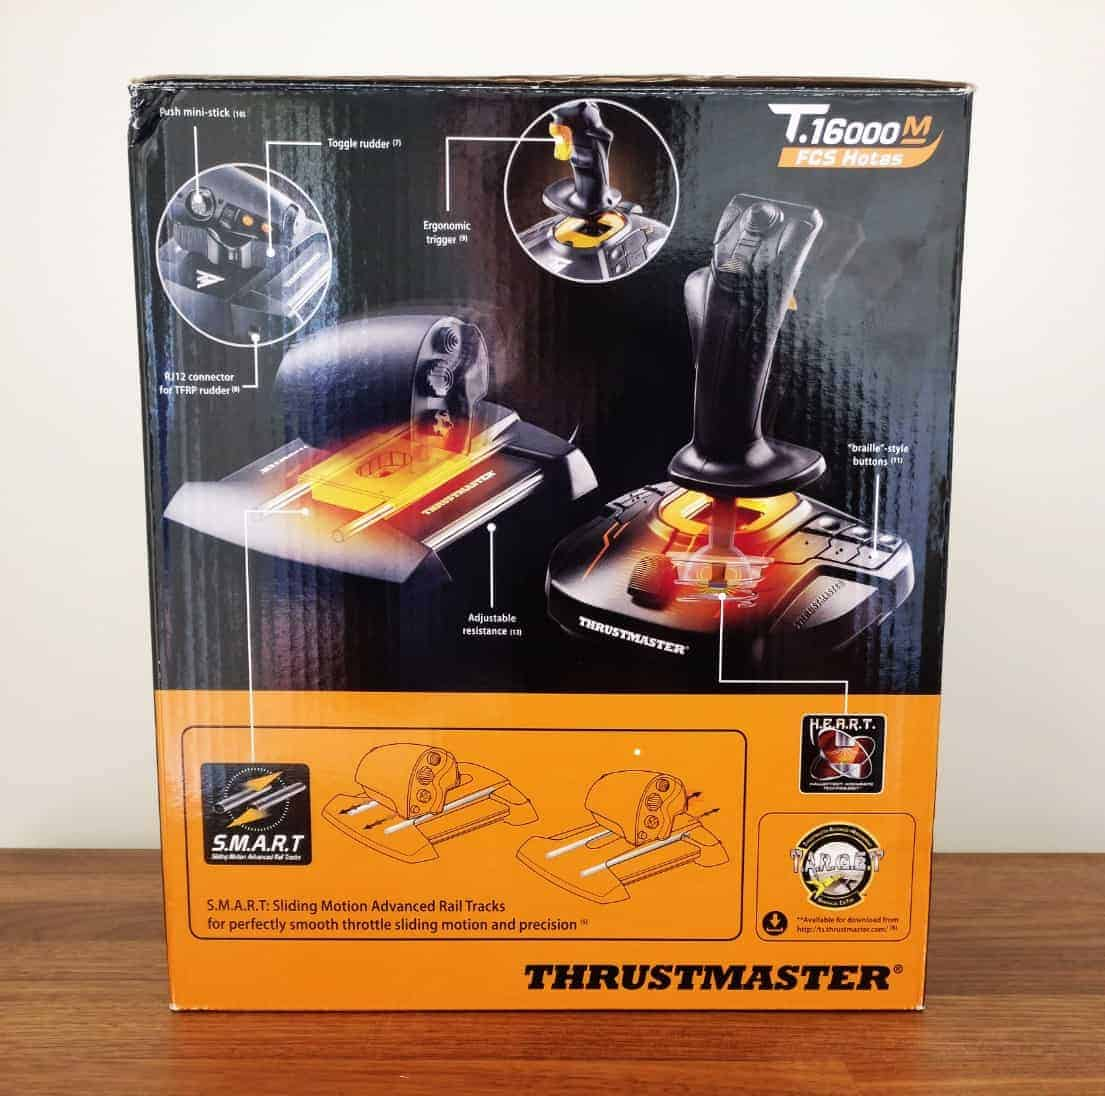 Thrustmaster-Flightstick-Photos02 Thrustmaster T.16000M FCS Hotas Joystick Review